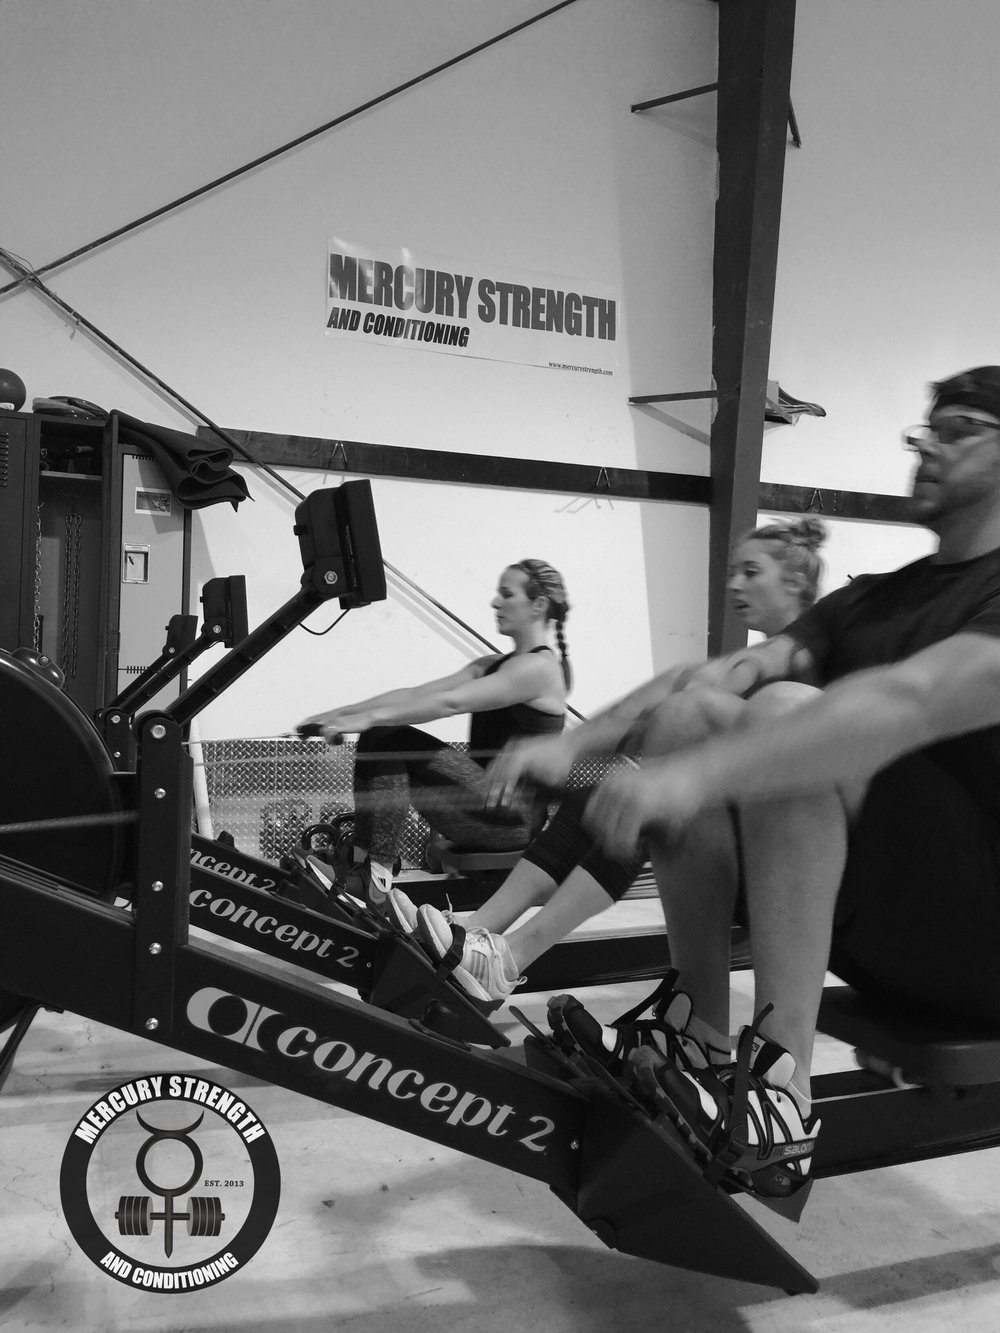 Kelly, Julianne, and Corey pushing hard during a 250m row